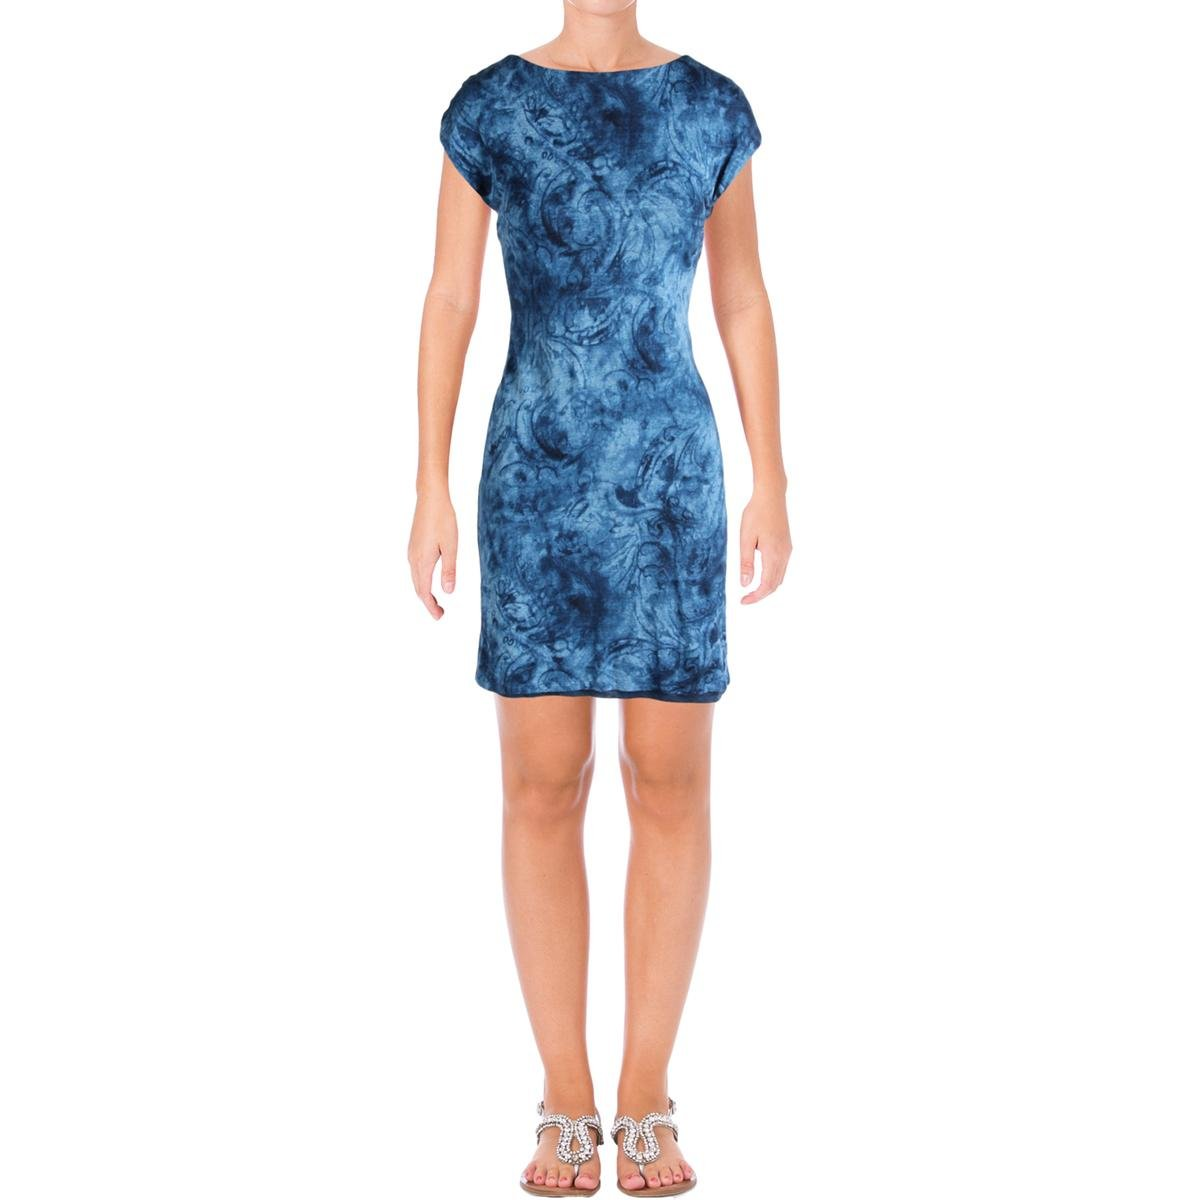 9d32322500d Lauren Ralph Lauren Women s Petite Jersey Shift Dress at Amazon Women s  Clothing store